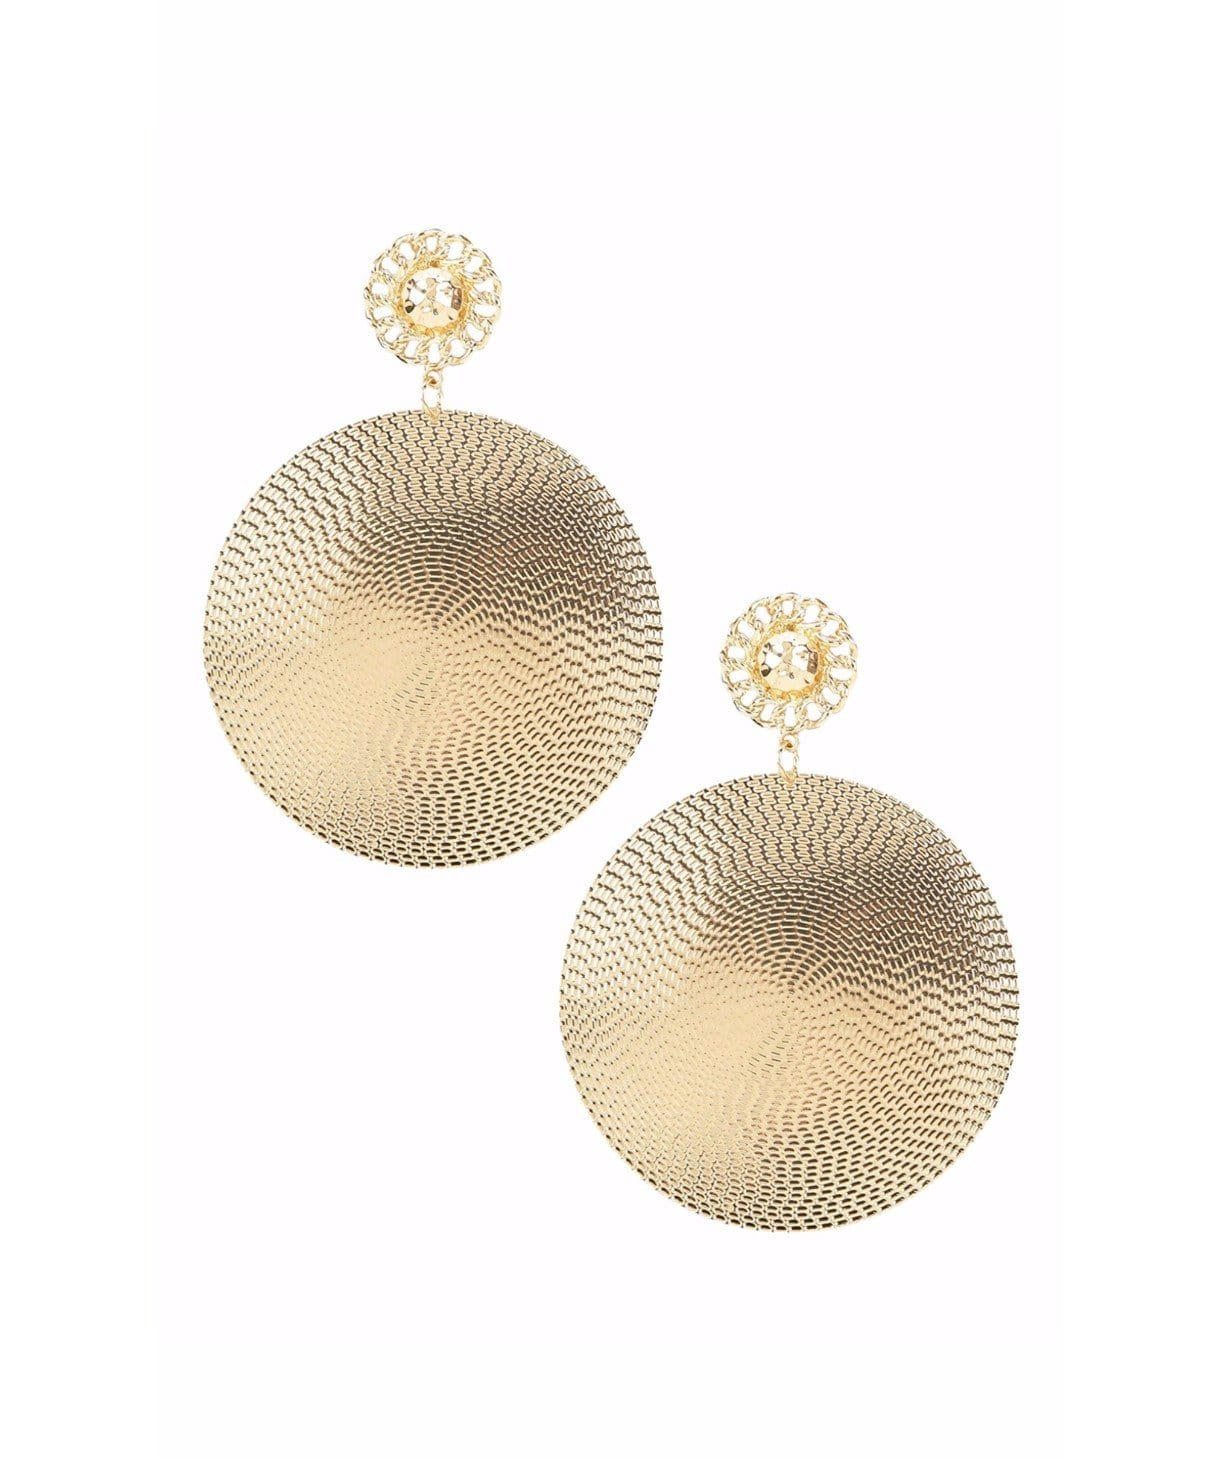 Brimming Gold Earrings - Uptownie